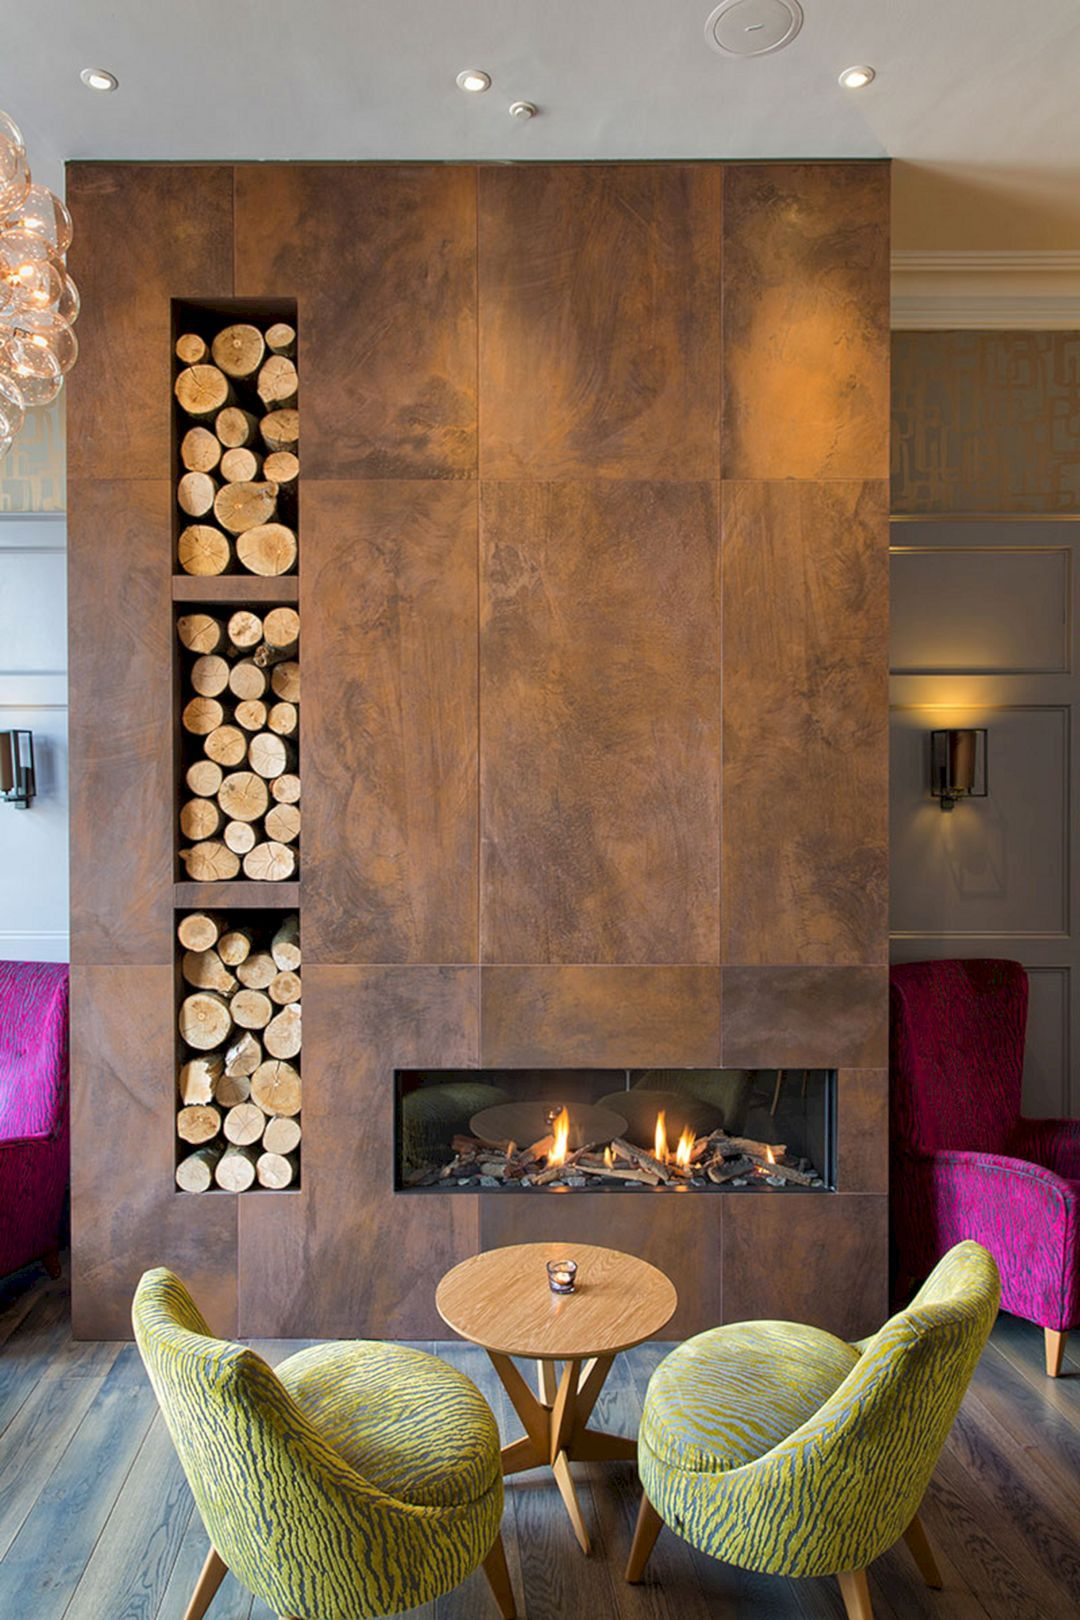 35 Beautiful Modern Living Room Interior Design Examples: 45+ Beautiful Contemporary Fireplace Design Ideas